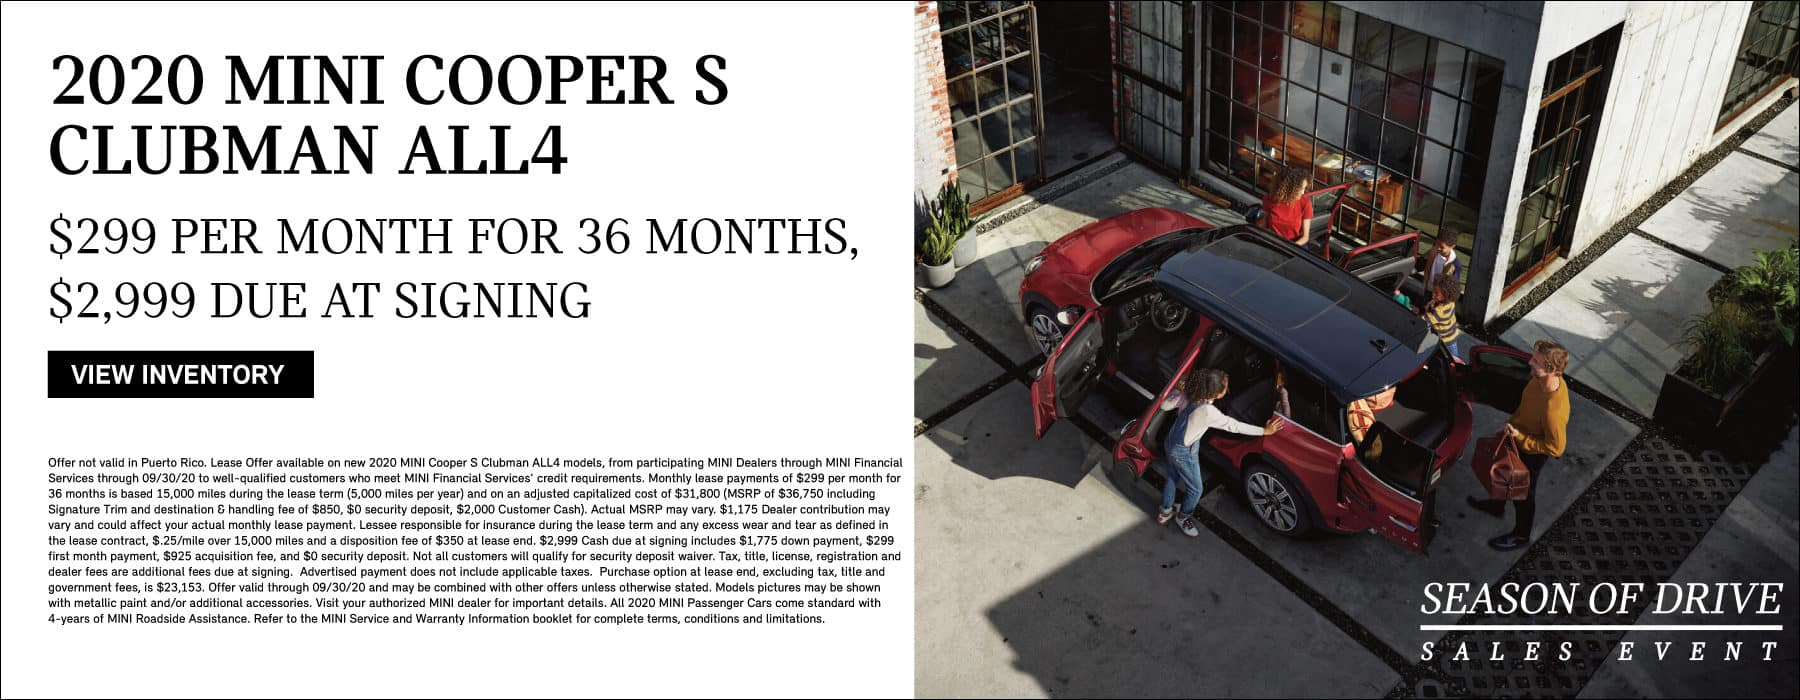 2020 MINI COOPER S CLUBMAN ALL4. LEASE FOR $299 PER MONTH, $2999 DUE AT SIGNING